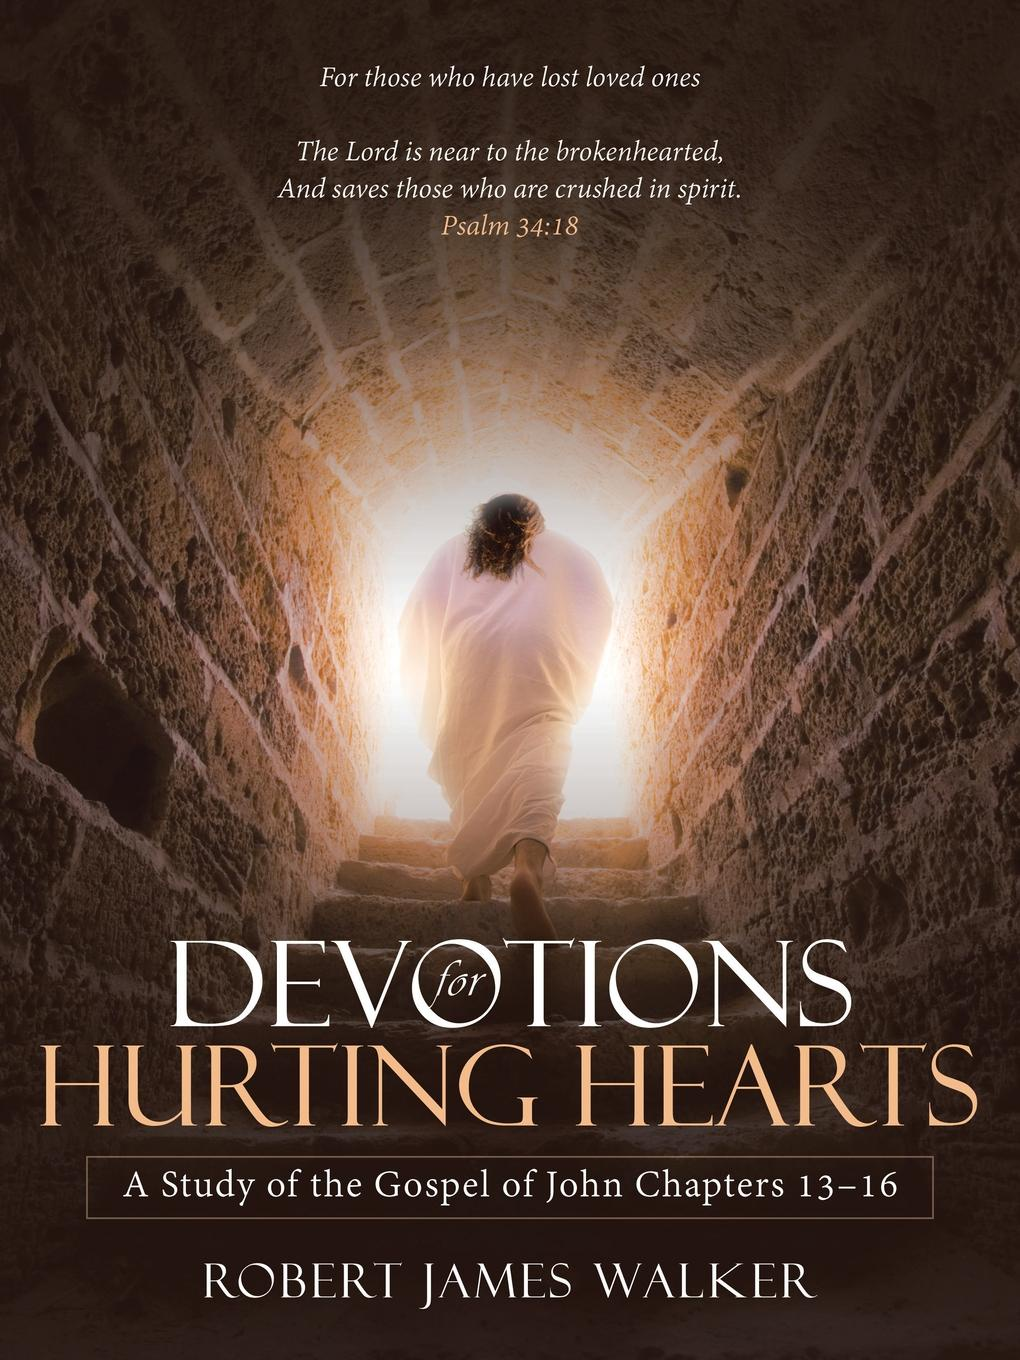 Robert James Walker Devotions for Hurting Hearts. A Study of the Gospel of John Chapters 13-16 who will comfort toffle